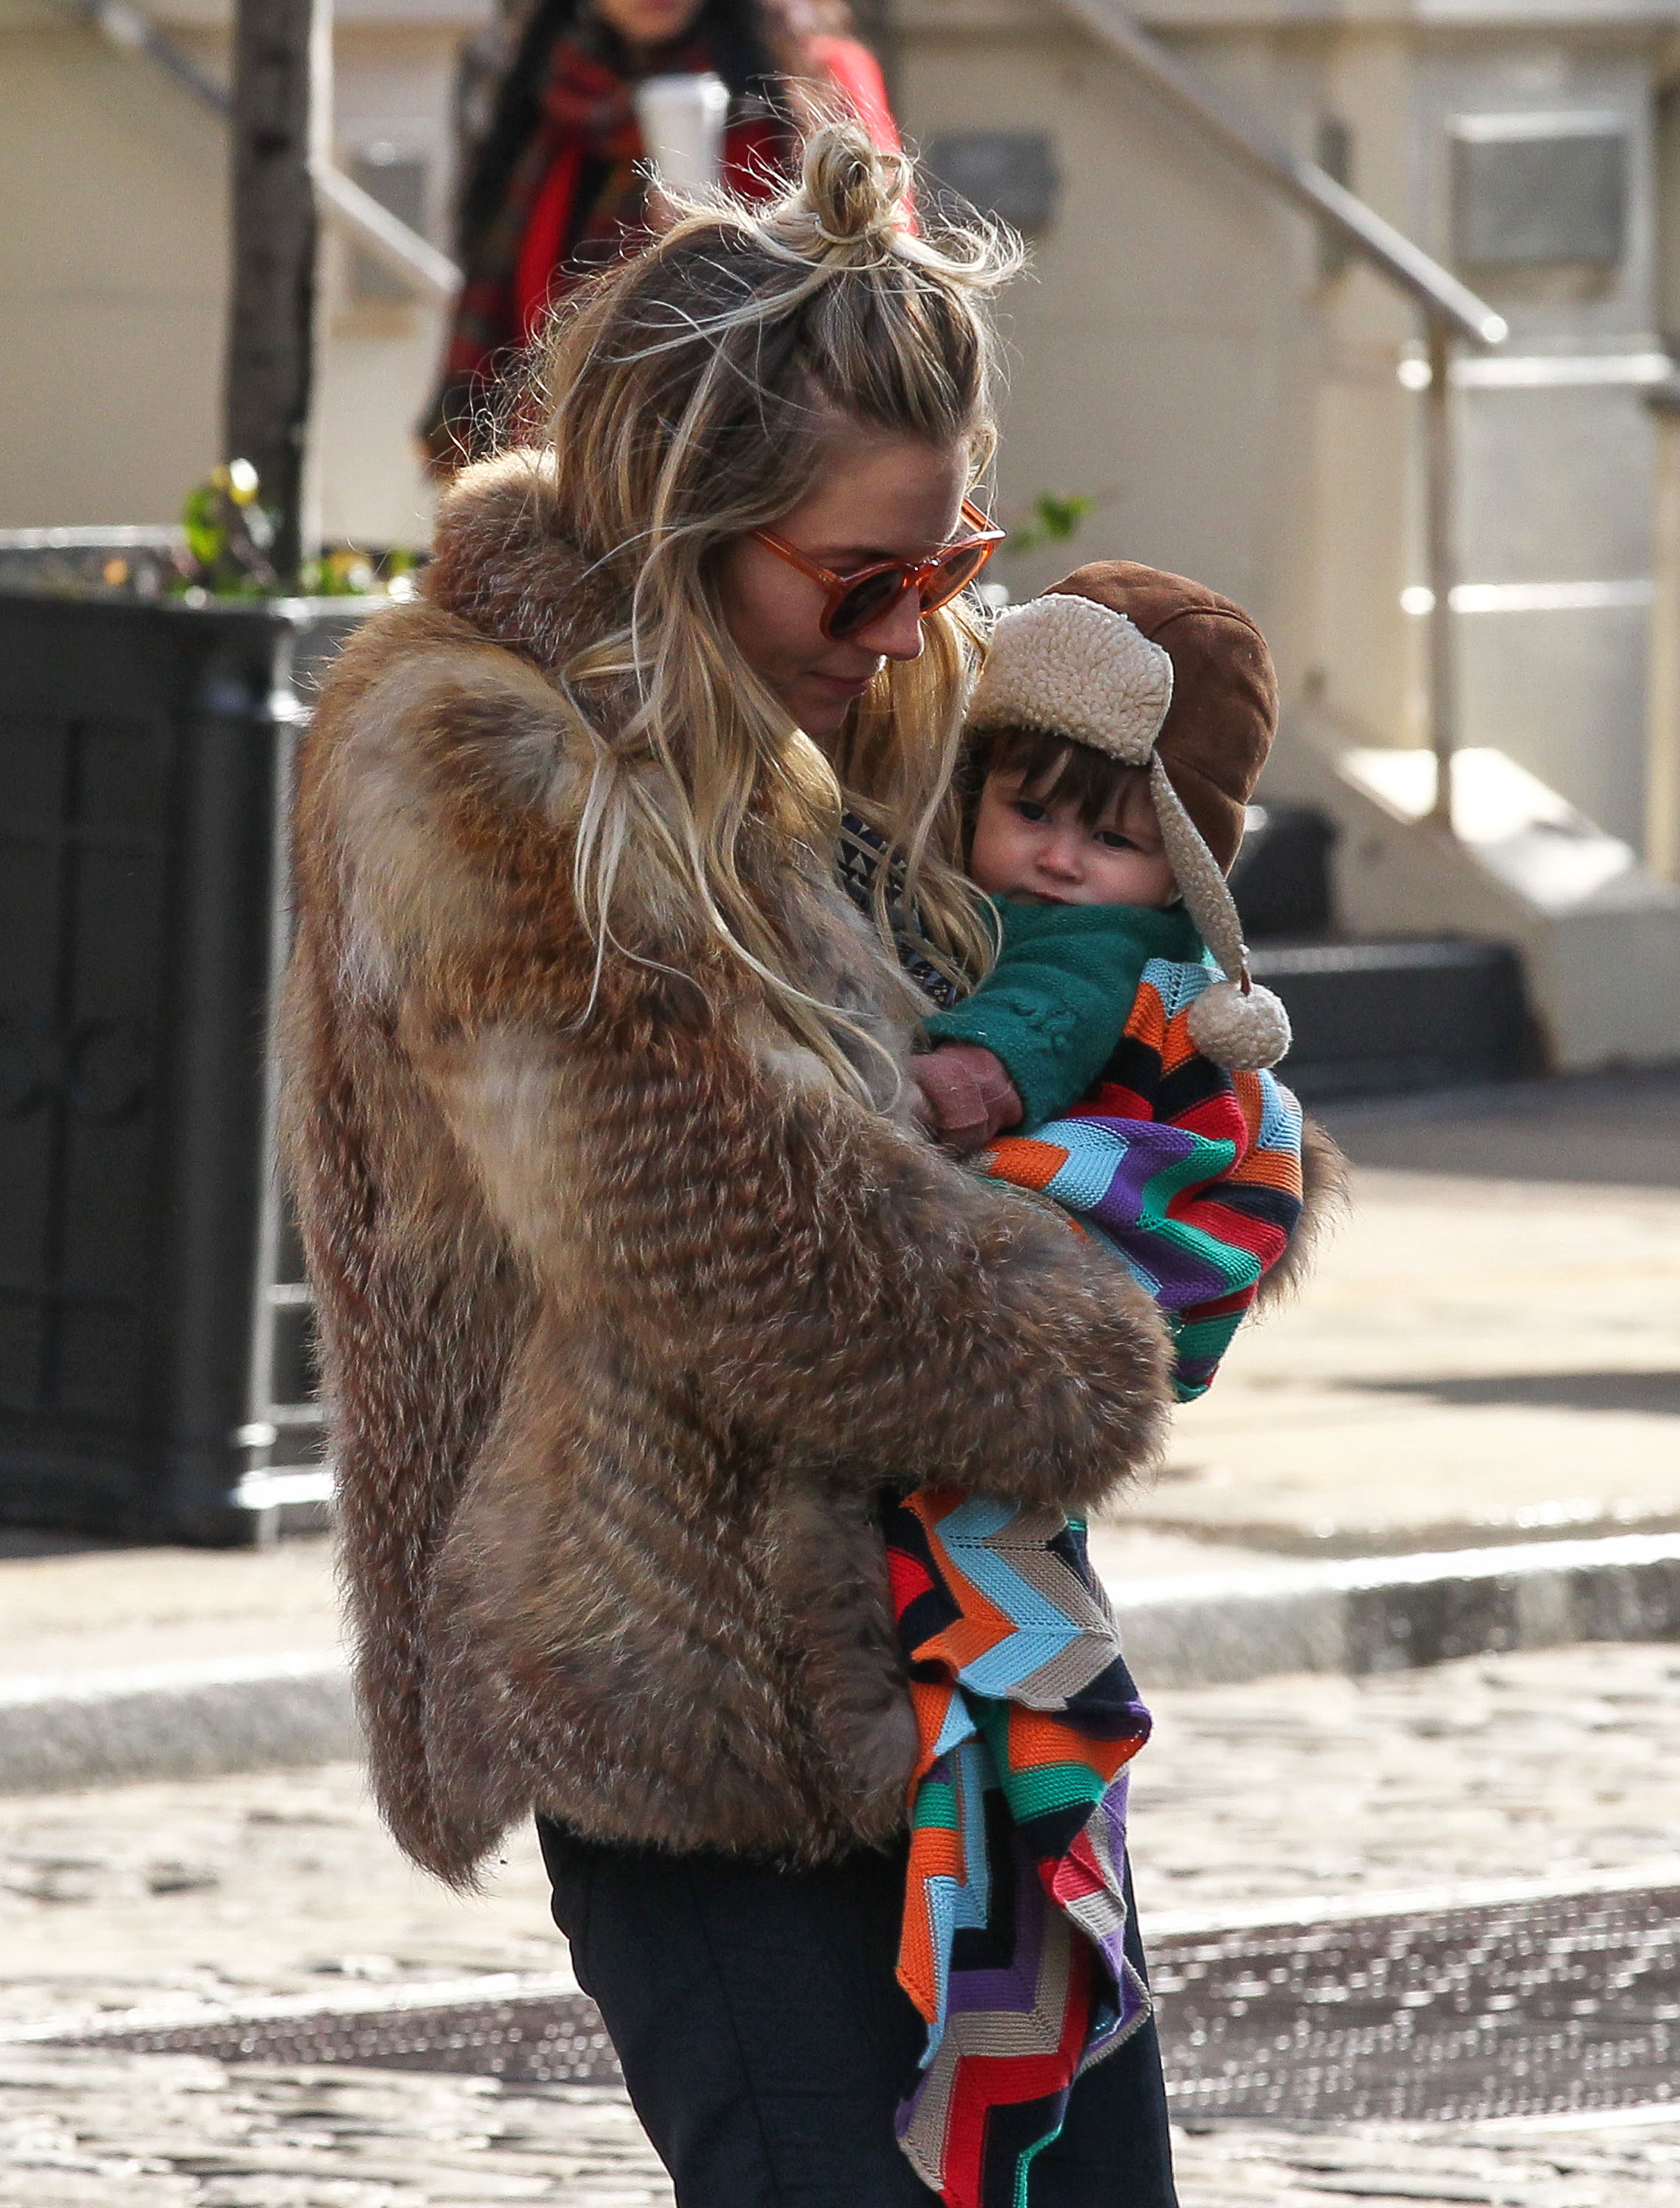 Sienna Miller went out in NYC with Marlowe Sturridge.